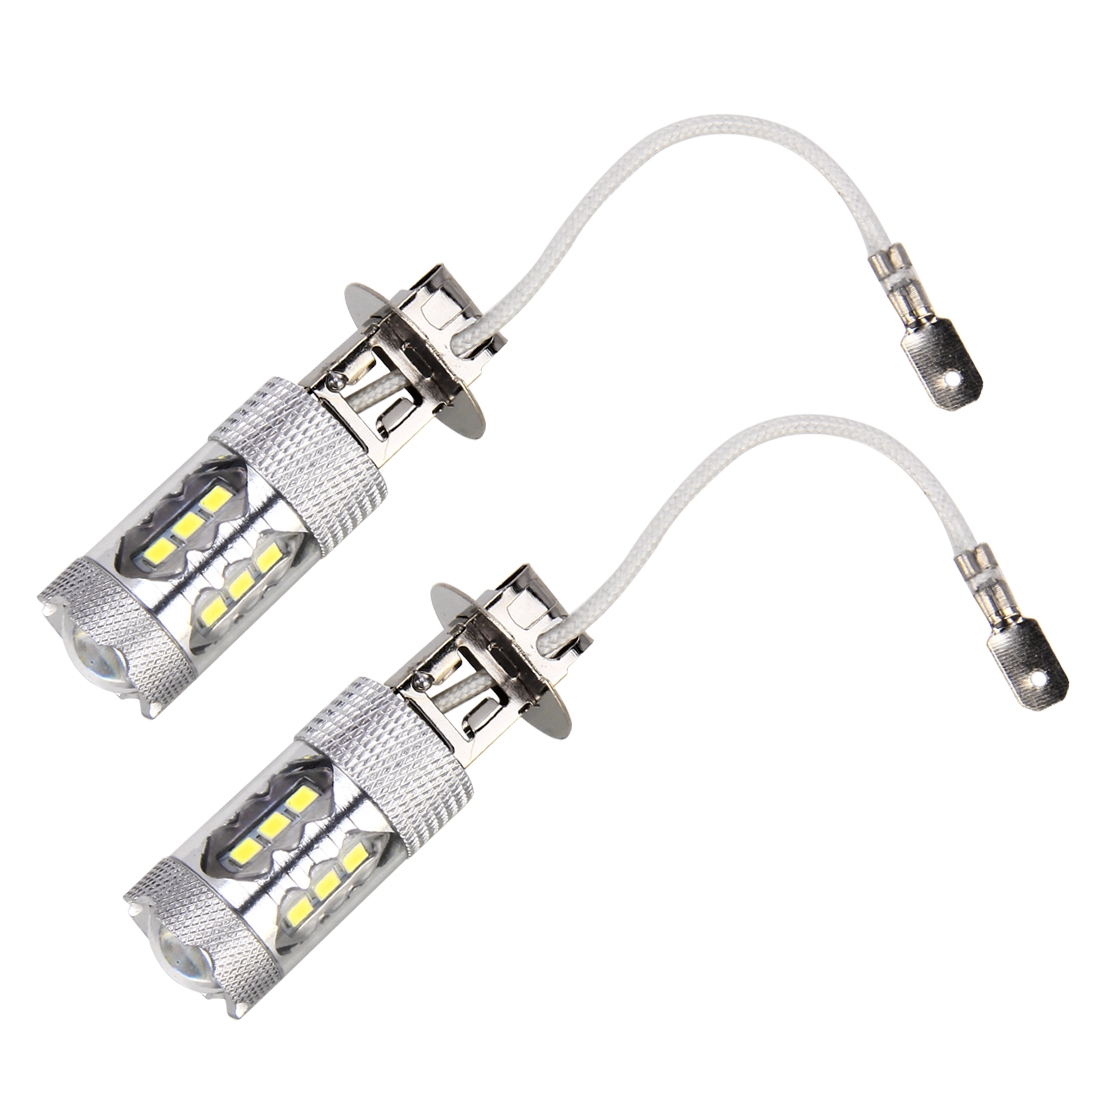 12v 5w 2 Pcs H3 Dc 12v 5w 250lm Auto Car Fog Lights With 16 Smd 2835 Led Bulbs White Light